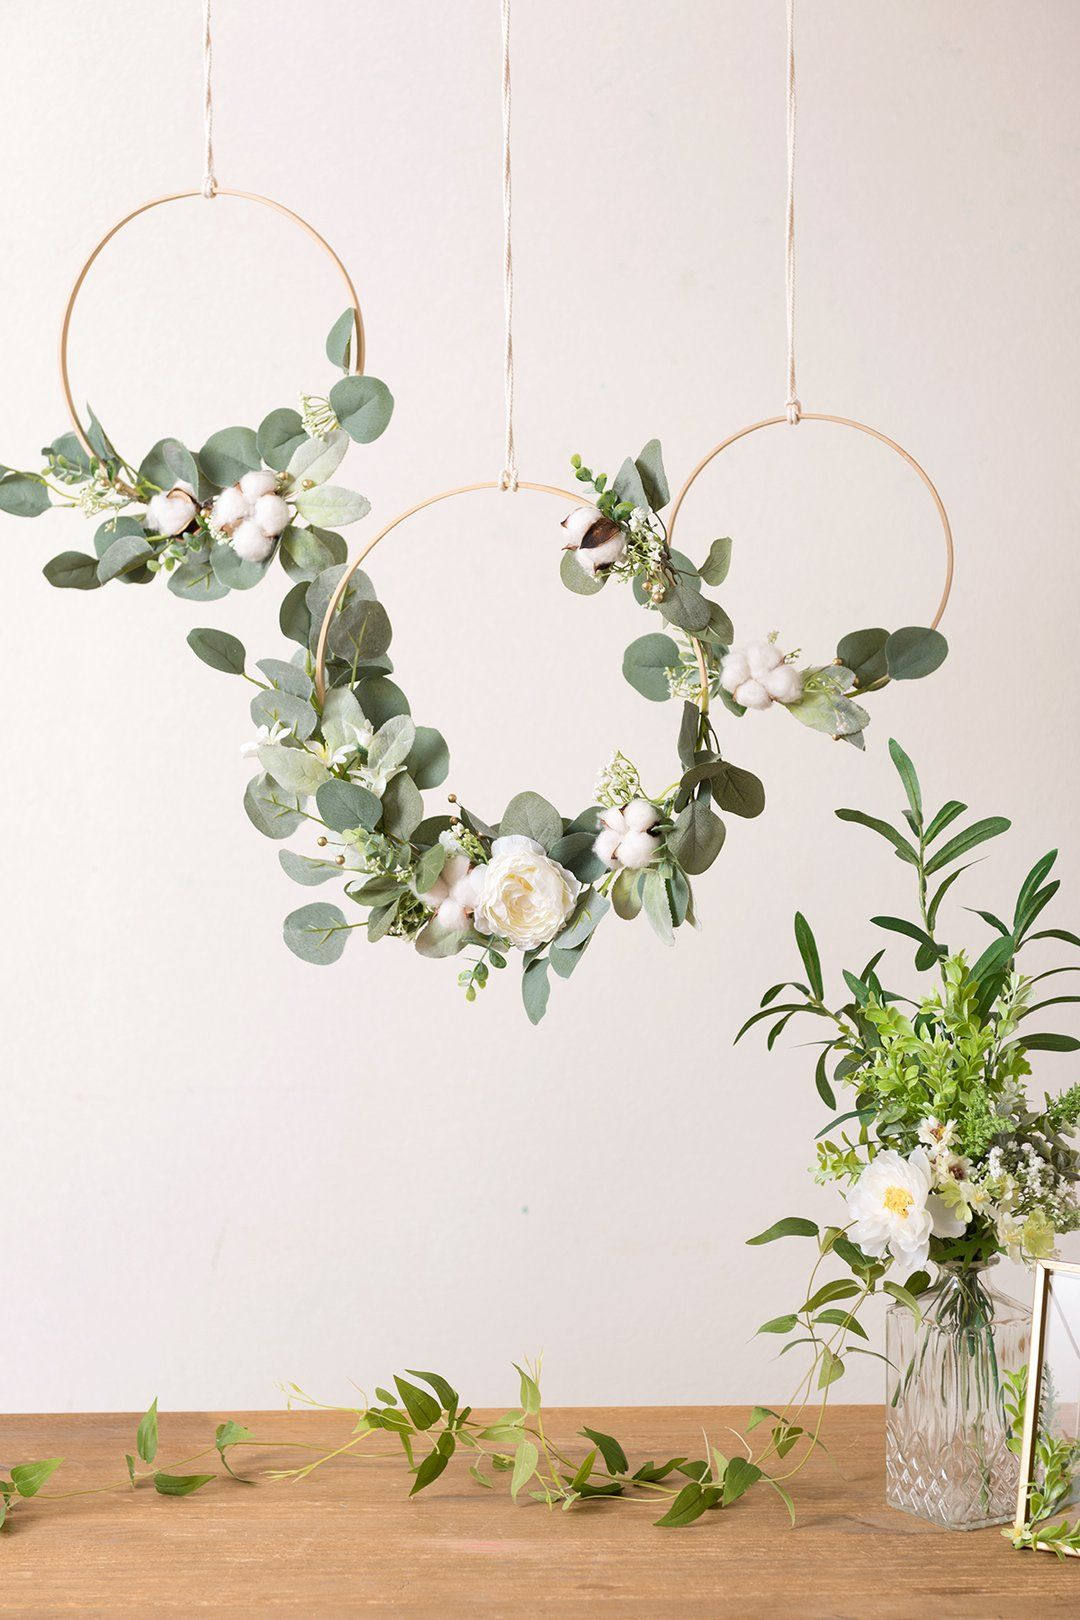 Eucalyptus Wreath for Greenery Wedding Decor (Set of 3)